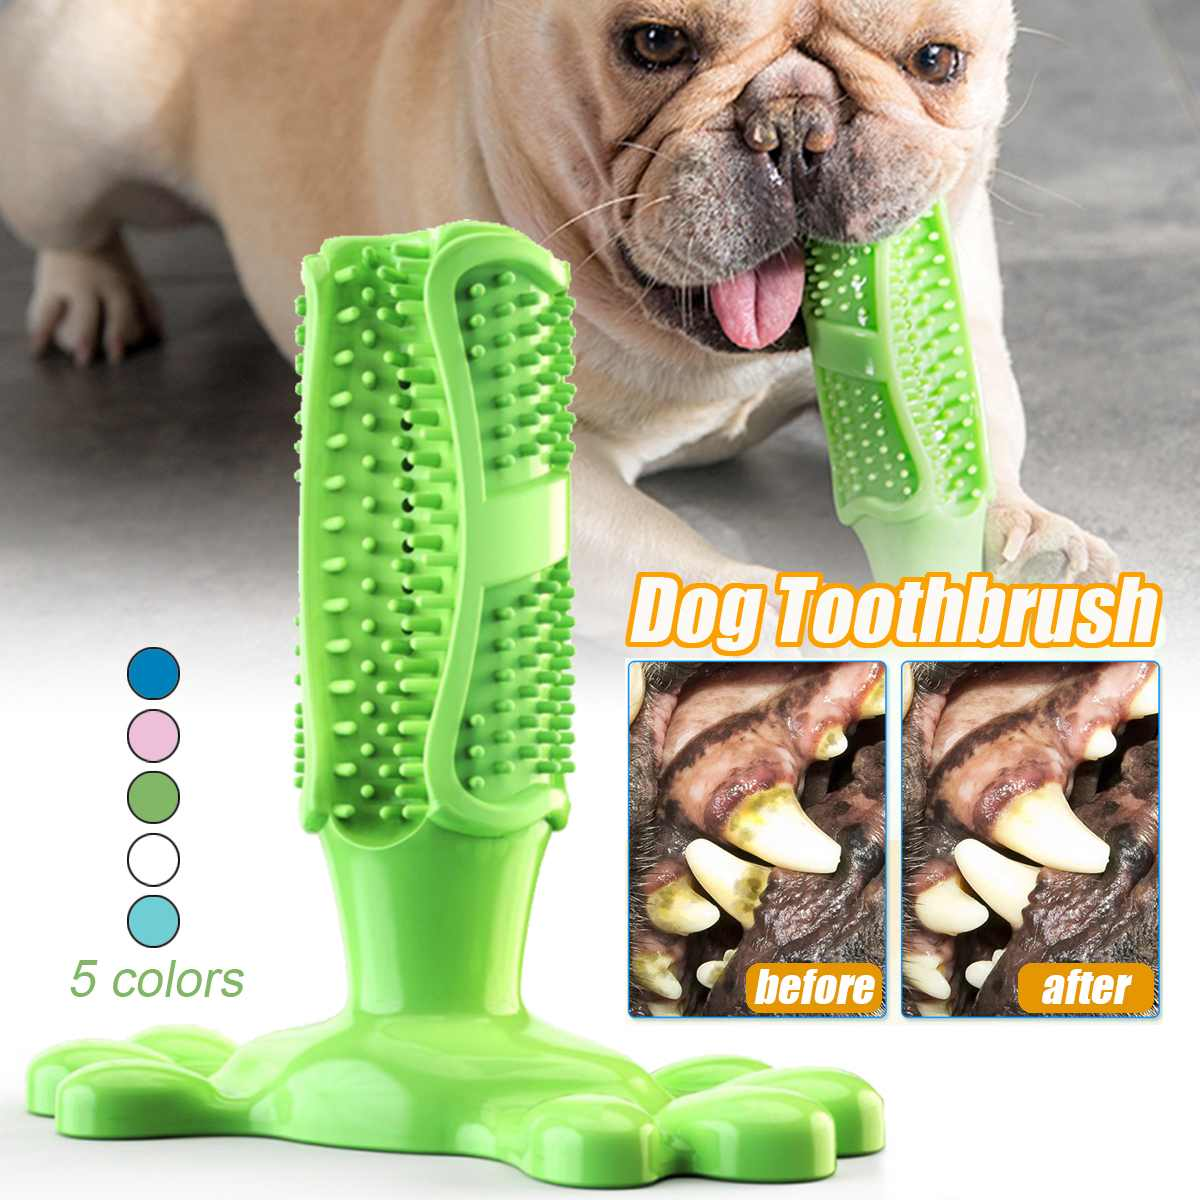 Dog Tooth-Brush (FDA Approved)